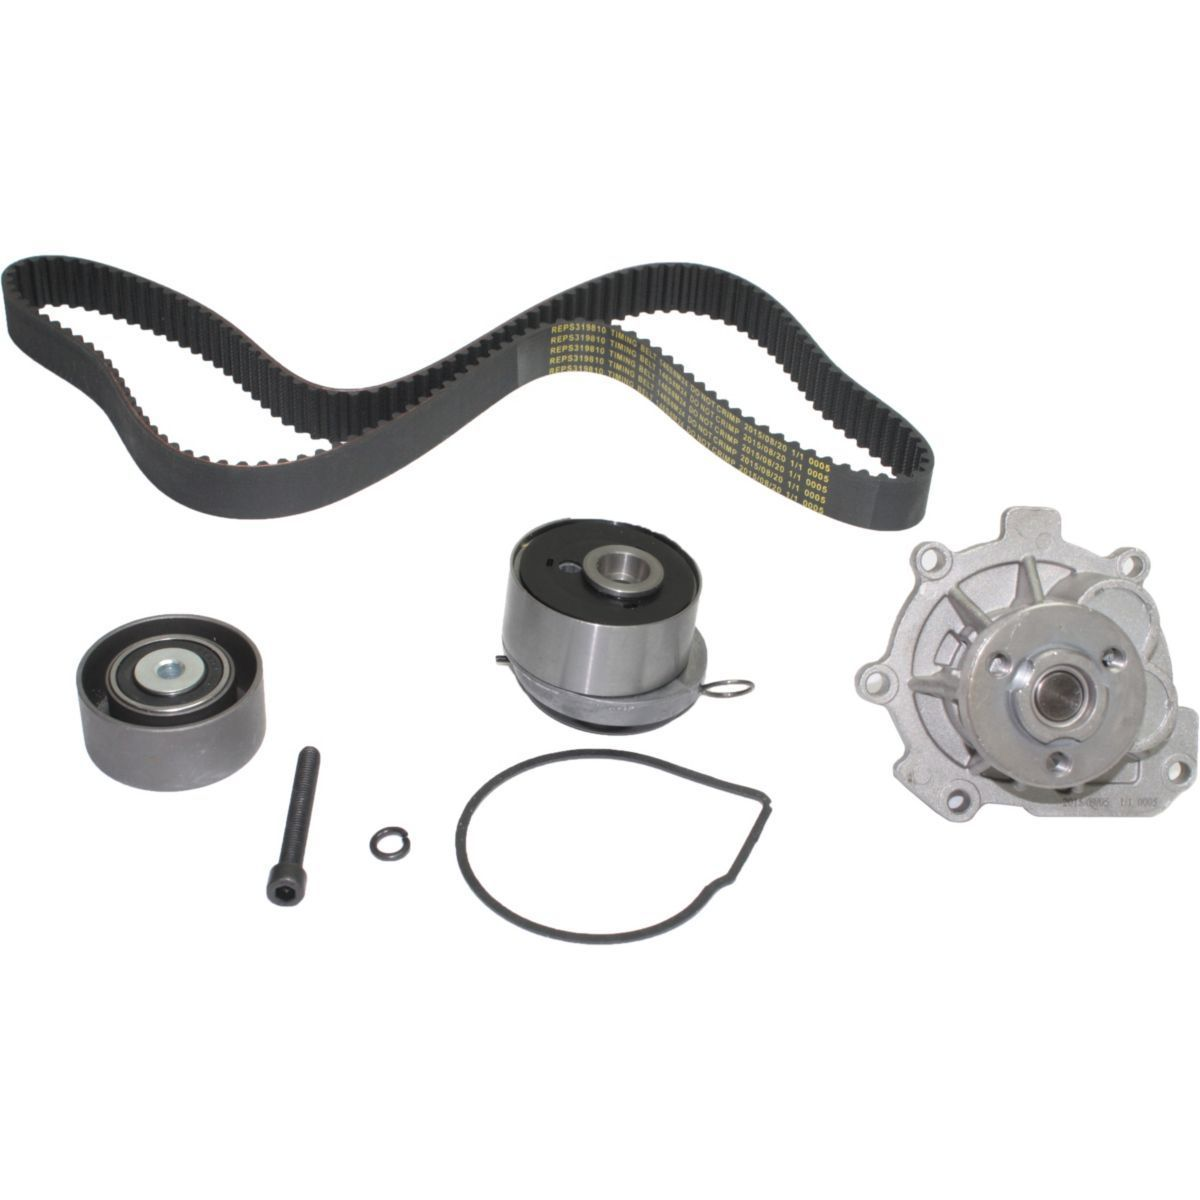 hight resolution of awesome timing belt kit new chevy chevrolet aveo cruze saturn astra aveo5 sonic g3 wave 2017 2018